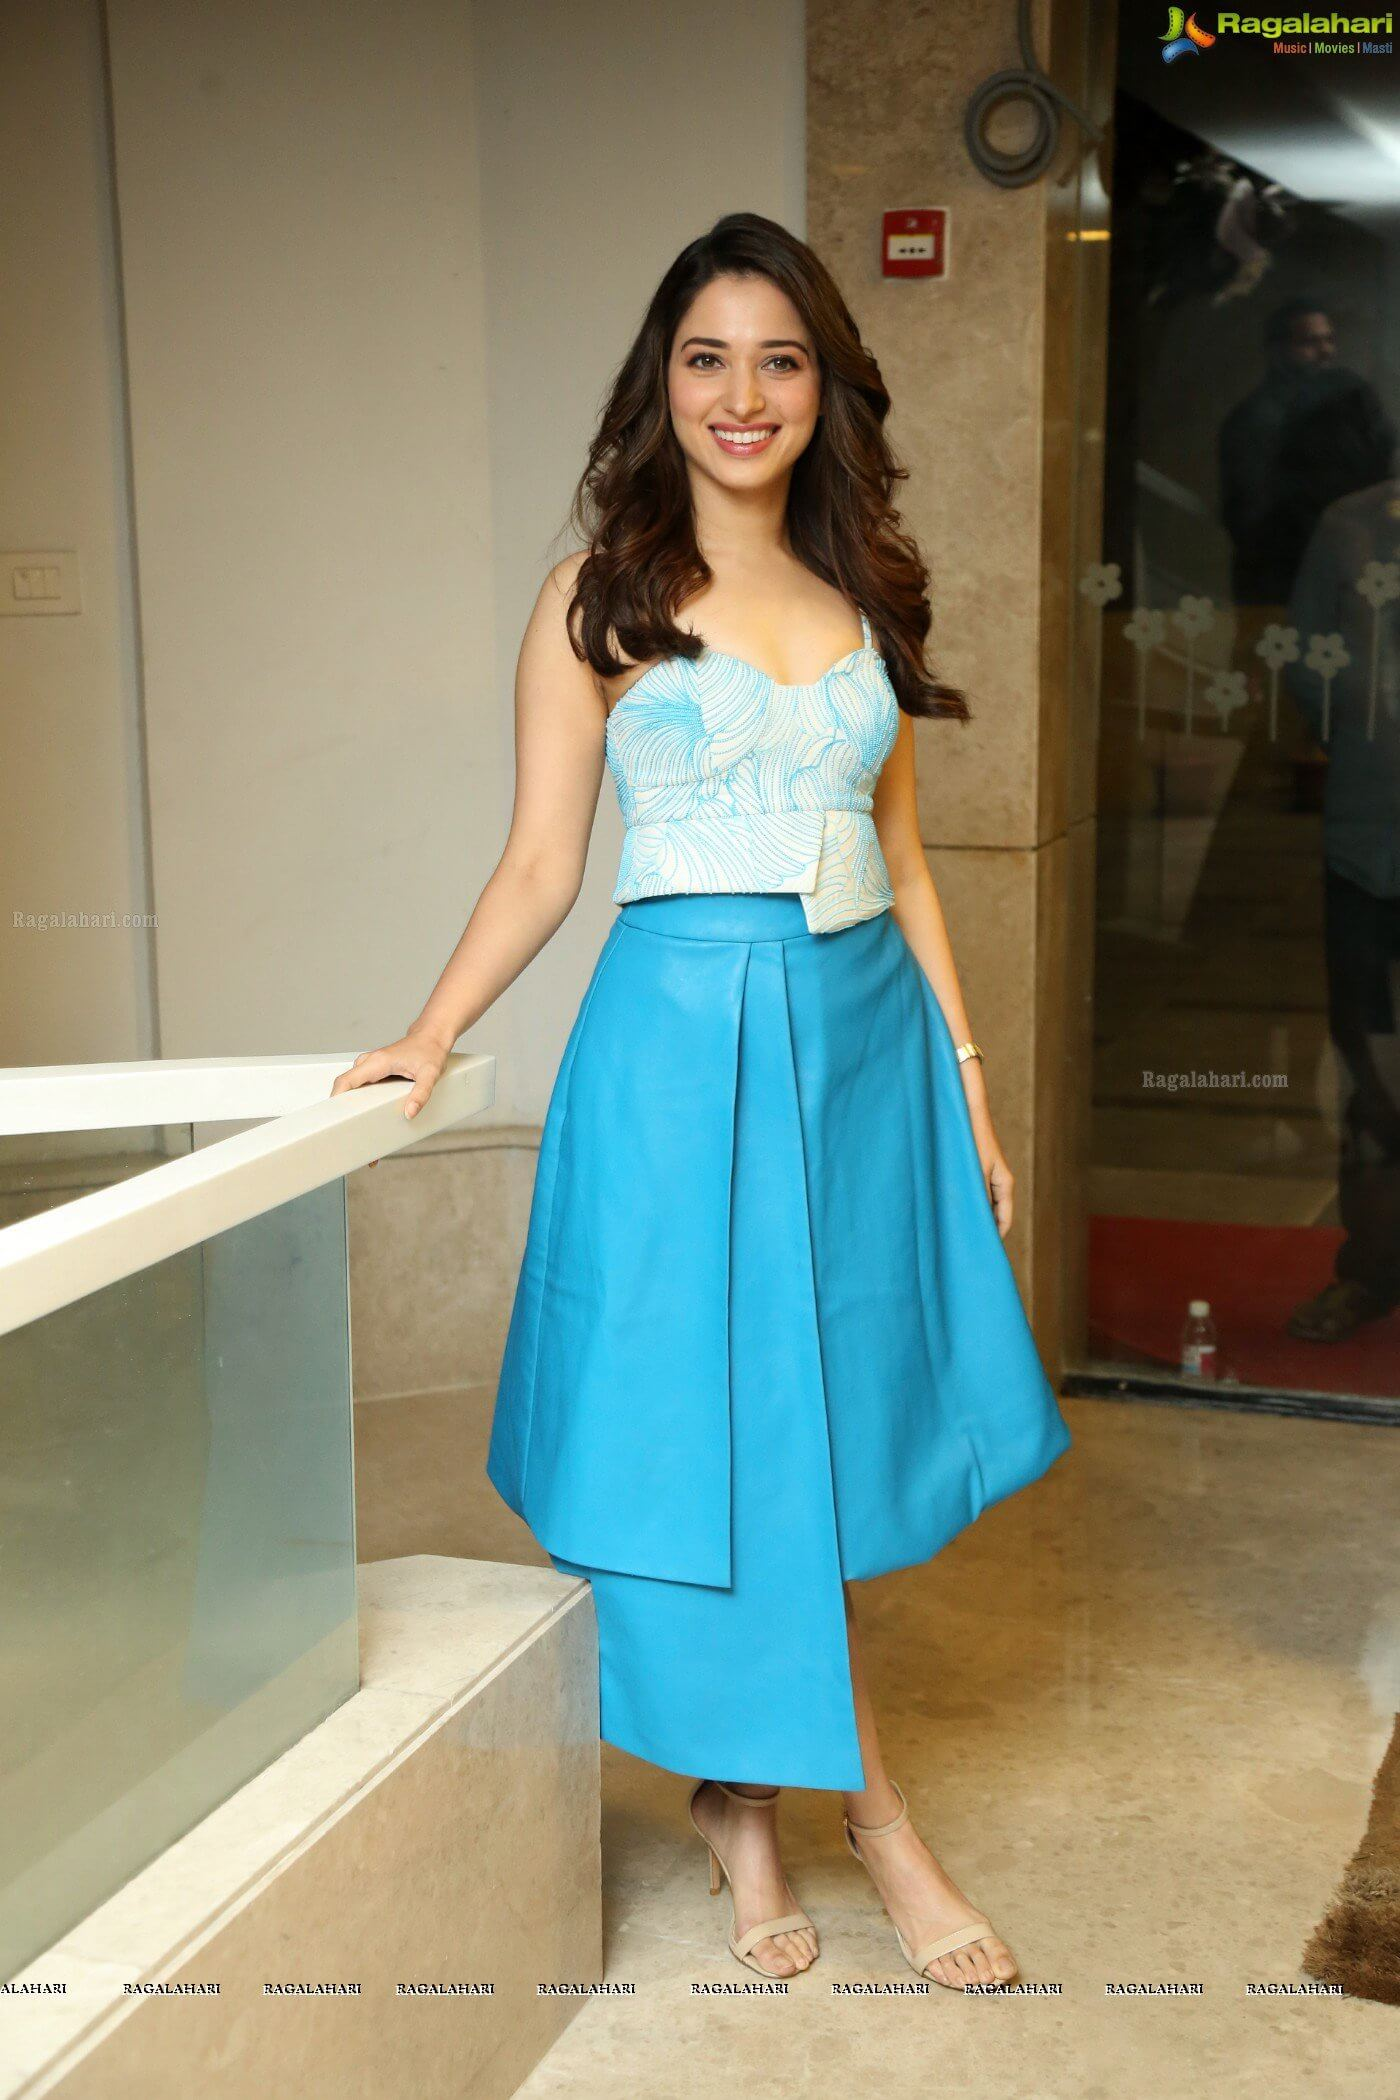 Tamannaah Bhatia Photos(images), Height, Biography, Movies, Date Of Birth, House, Details, Marriage, Boyfriend, Net Worth, Education, Instagram, Facebook, Twitter, Wiki, Imdb, Youtube (85)